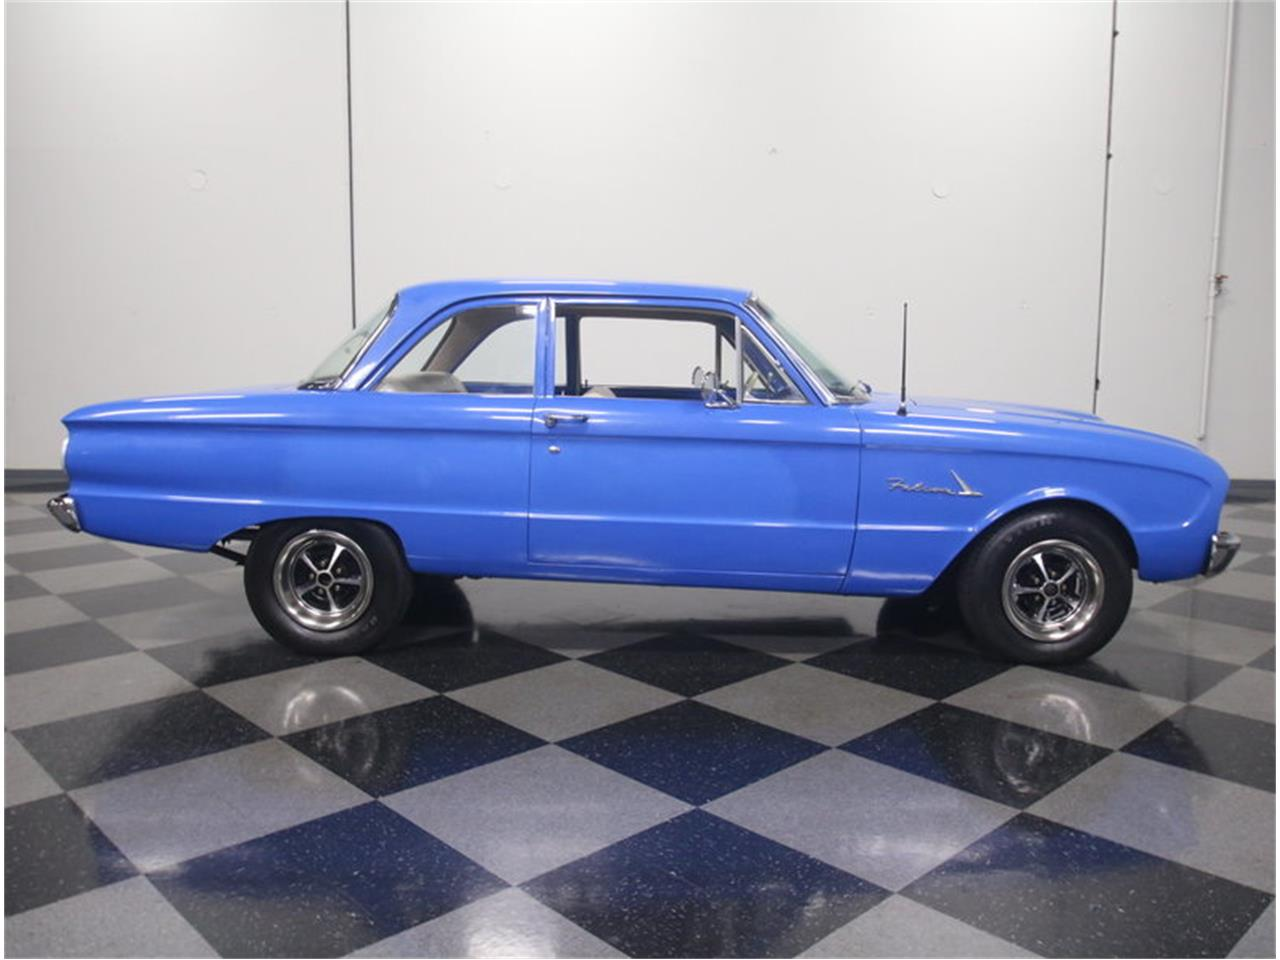 Large Picture of Classic 1962 Ford Falcon - $14,995.00 - MH3Z